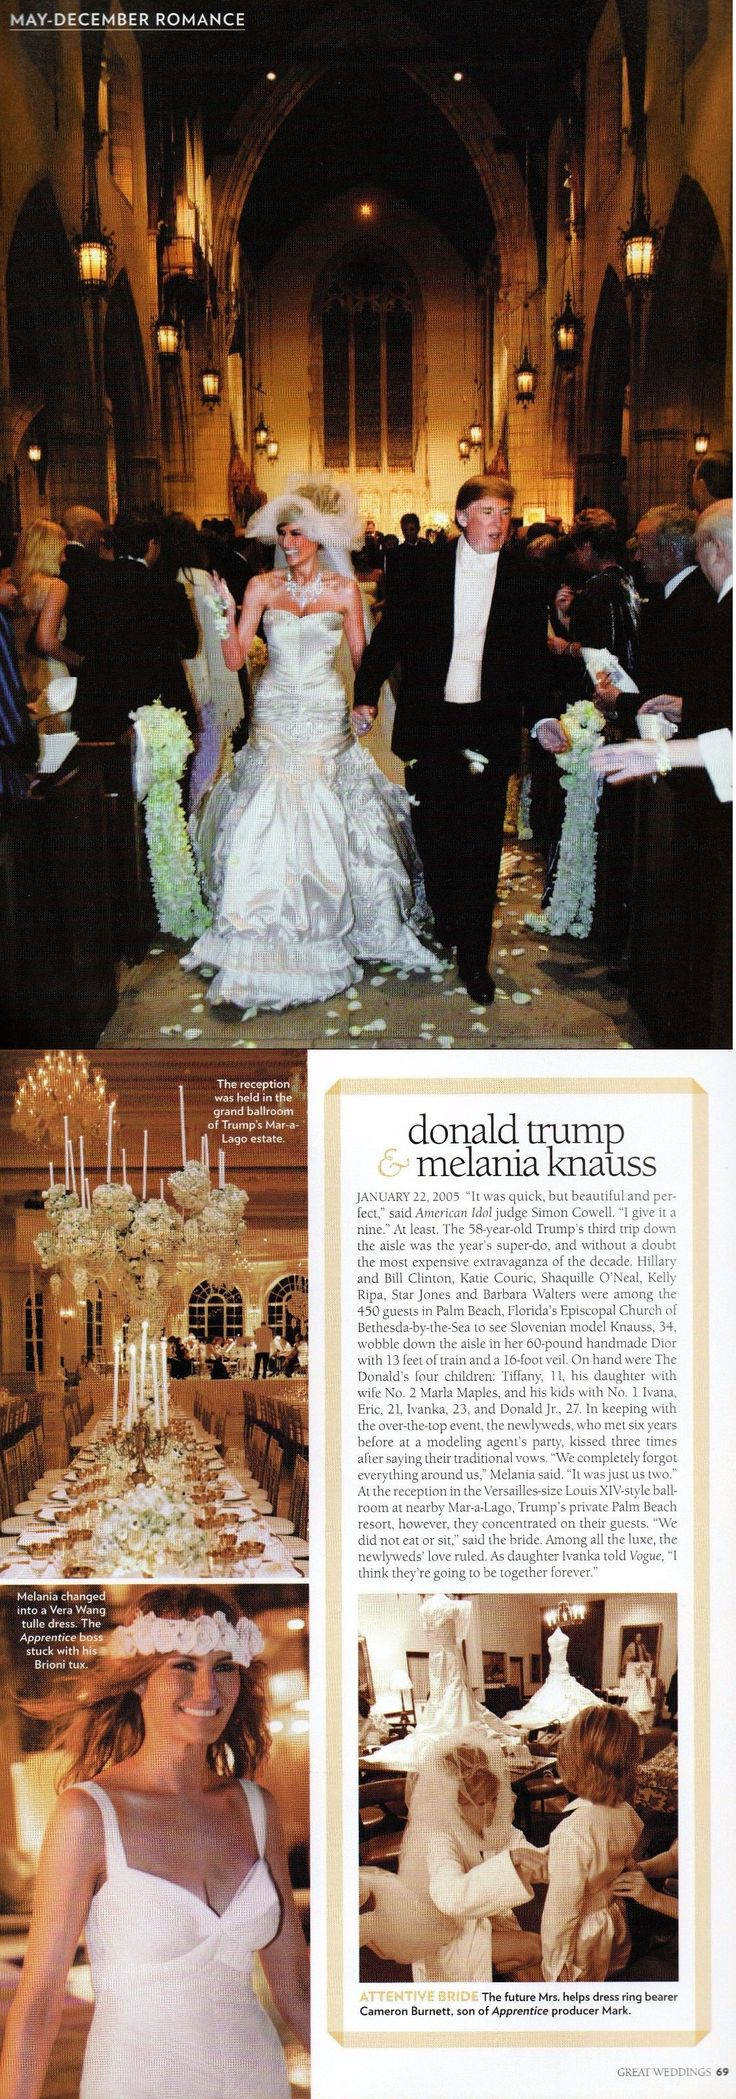 Donald Trump And Melania 2 Page Clipping Wedding BUY IT NOW